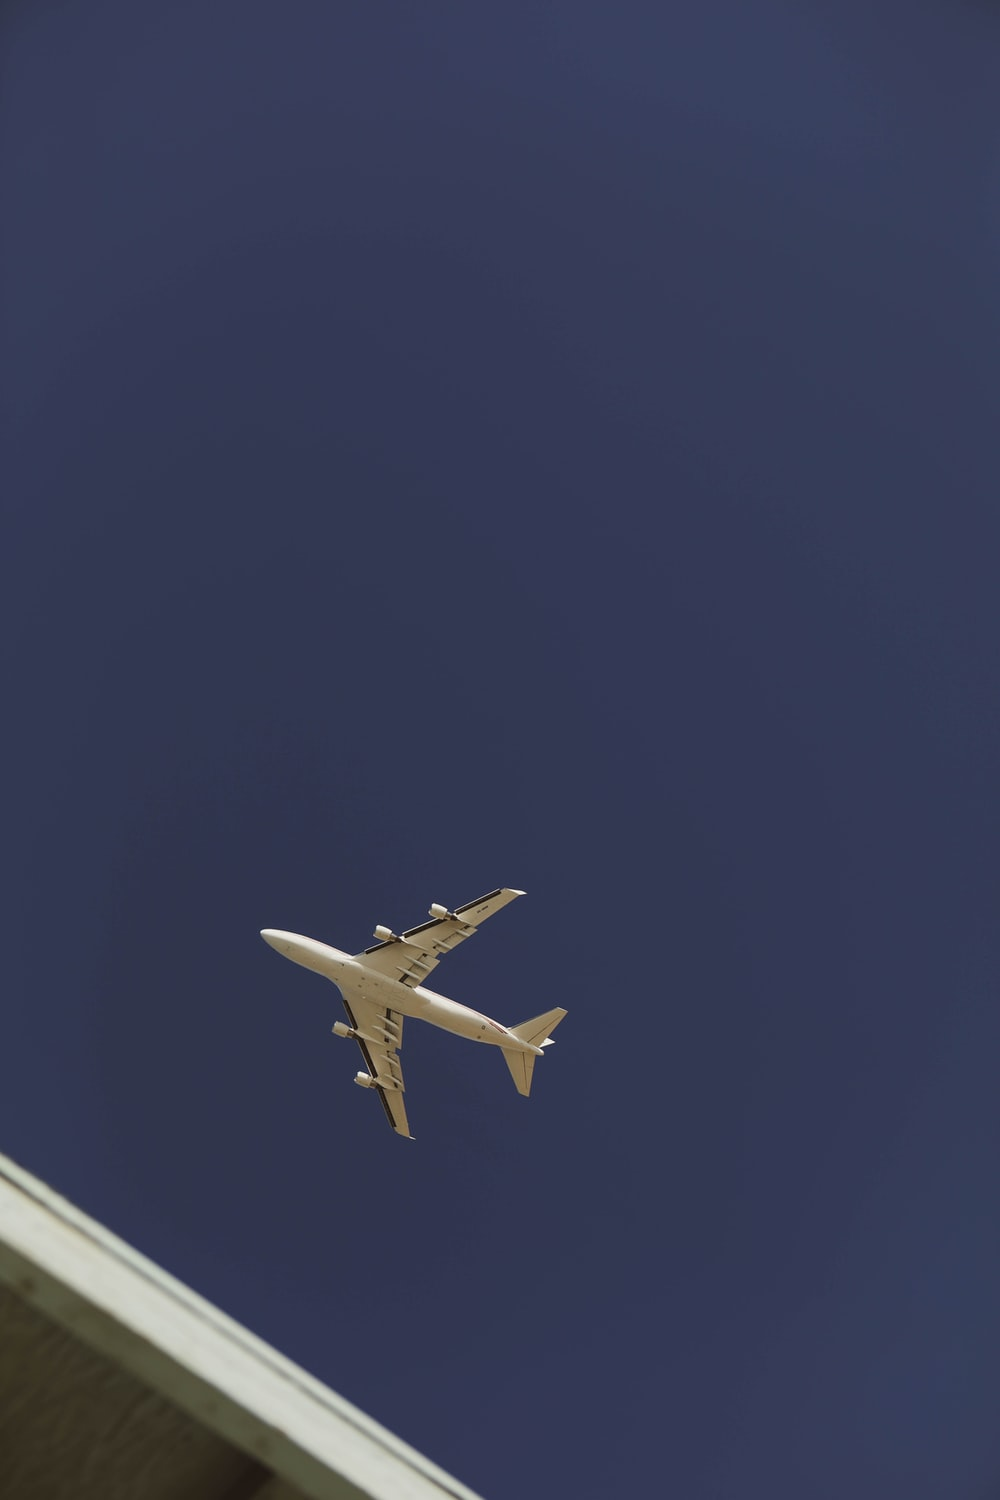 white airplane in mid air during daytime